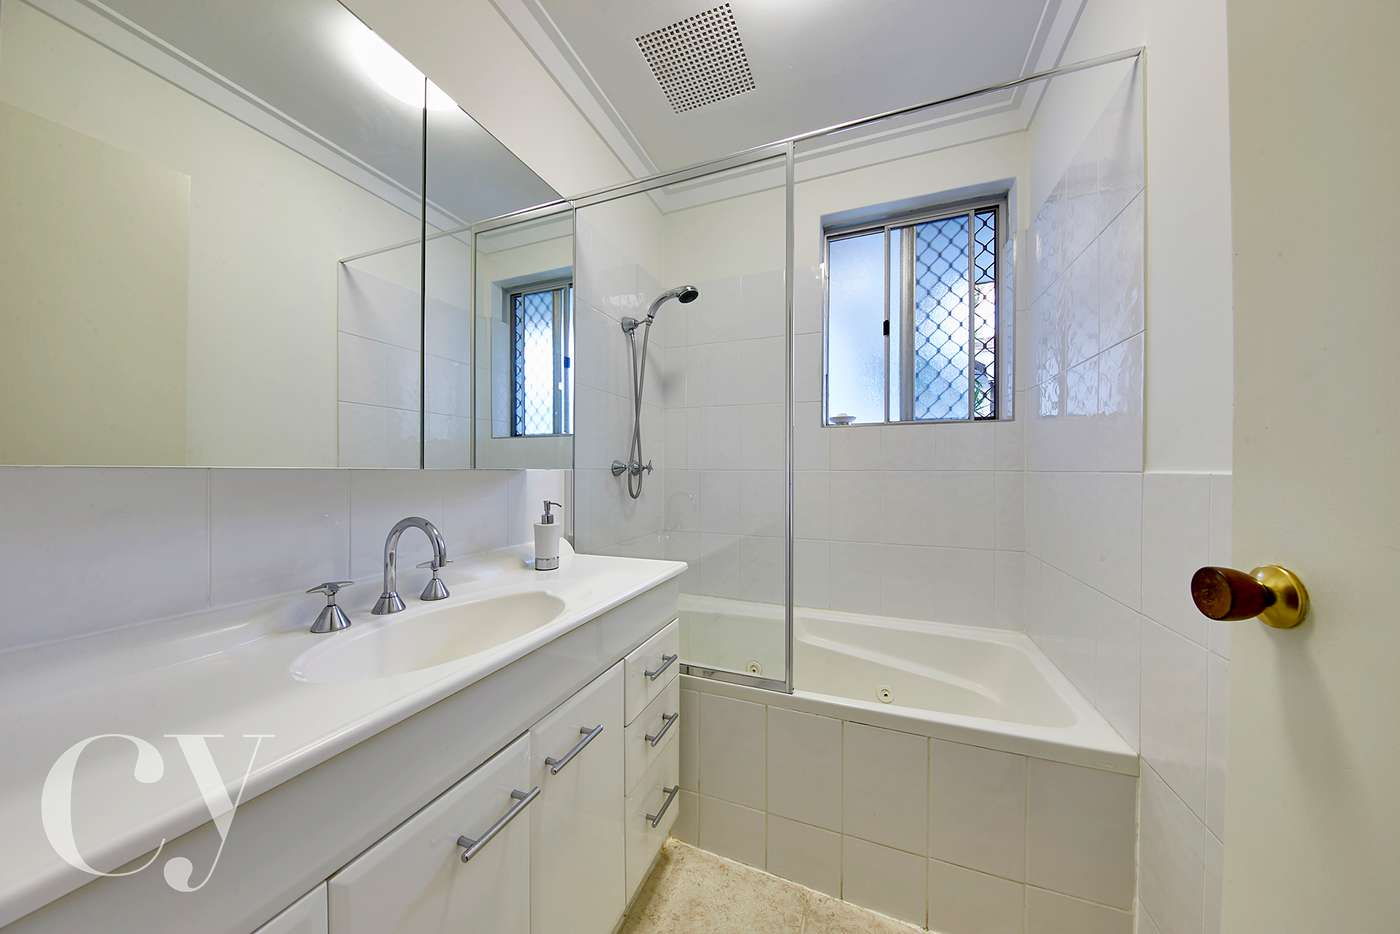 Sixth view of Homely villa listing, 16A Saunders Street, Como WA 6152